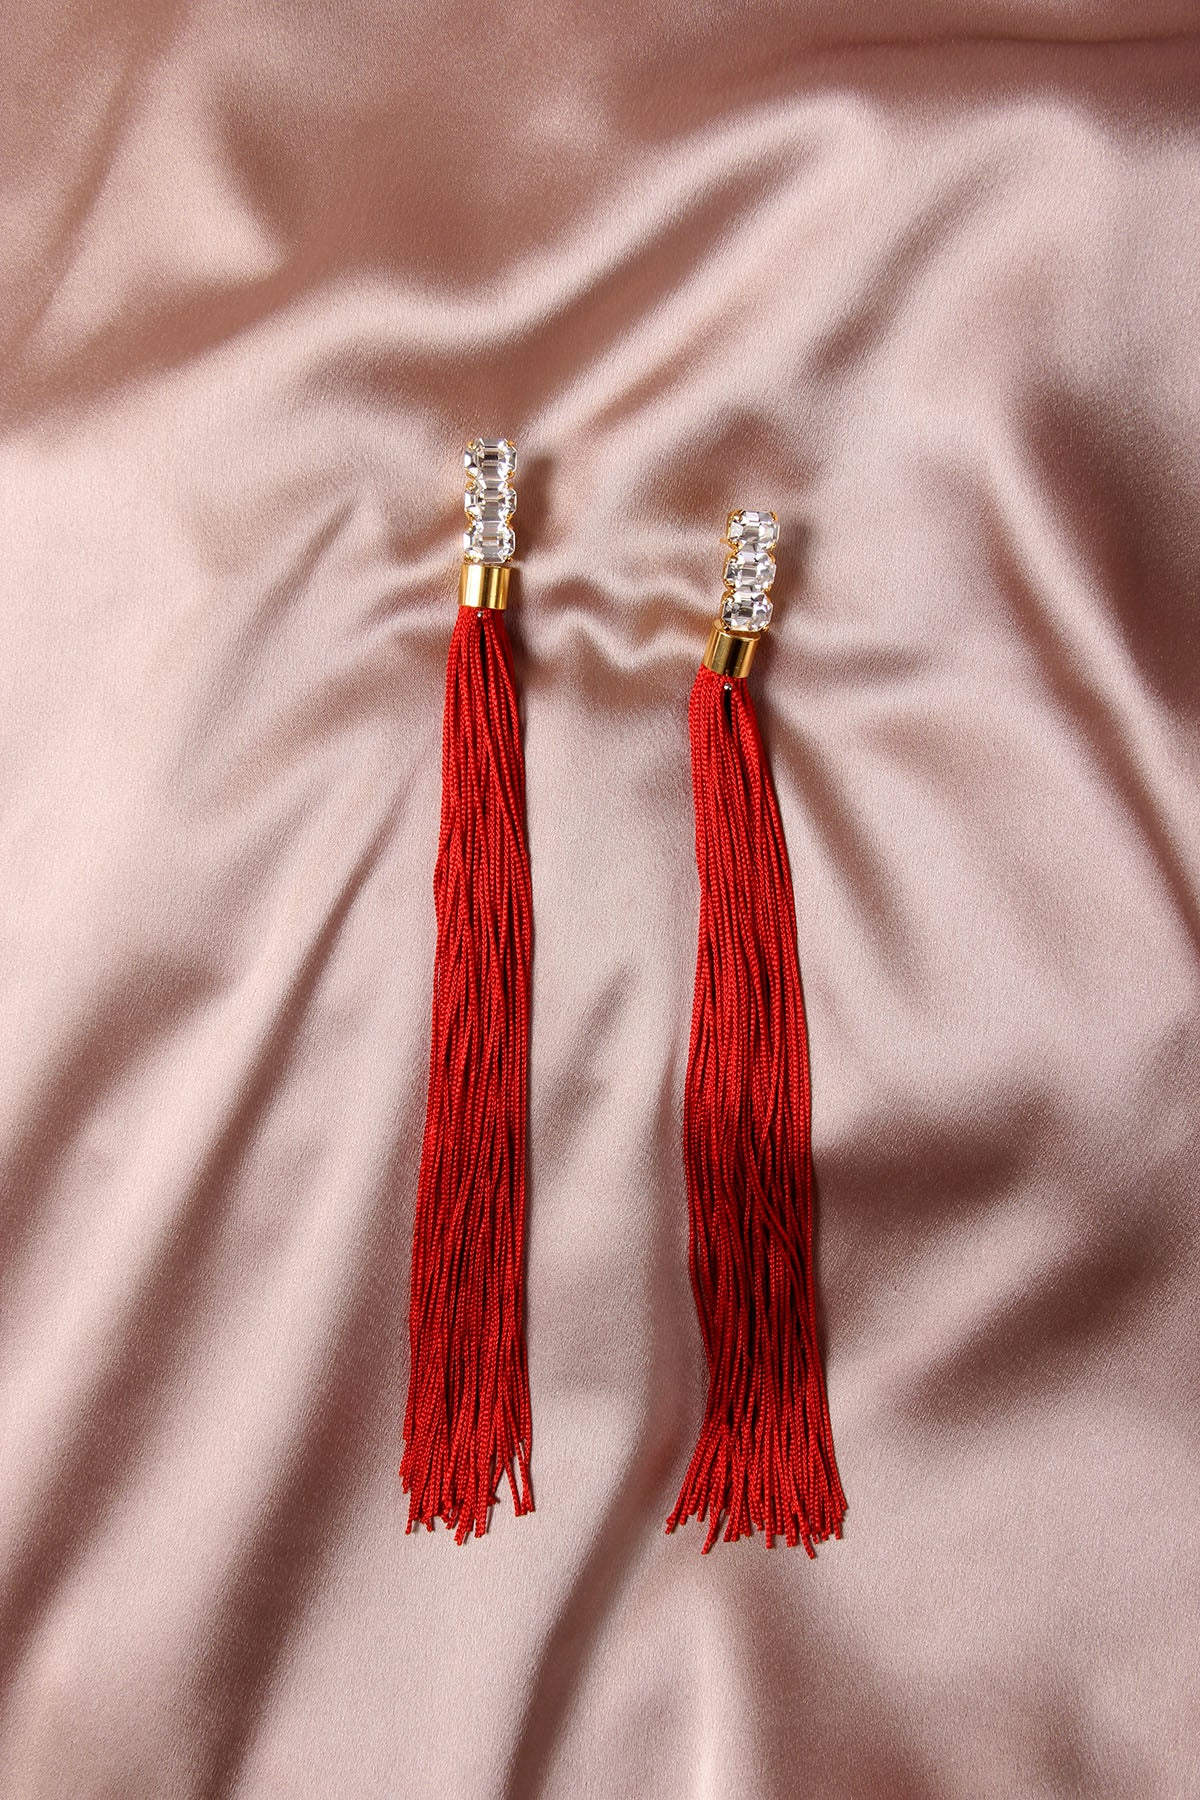 THE WEEPING SOIL RED EARRINGS